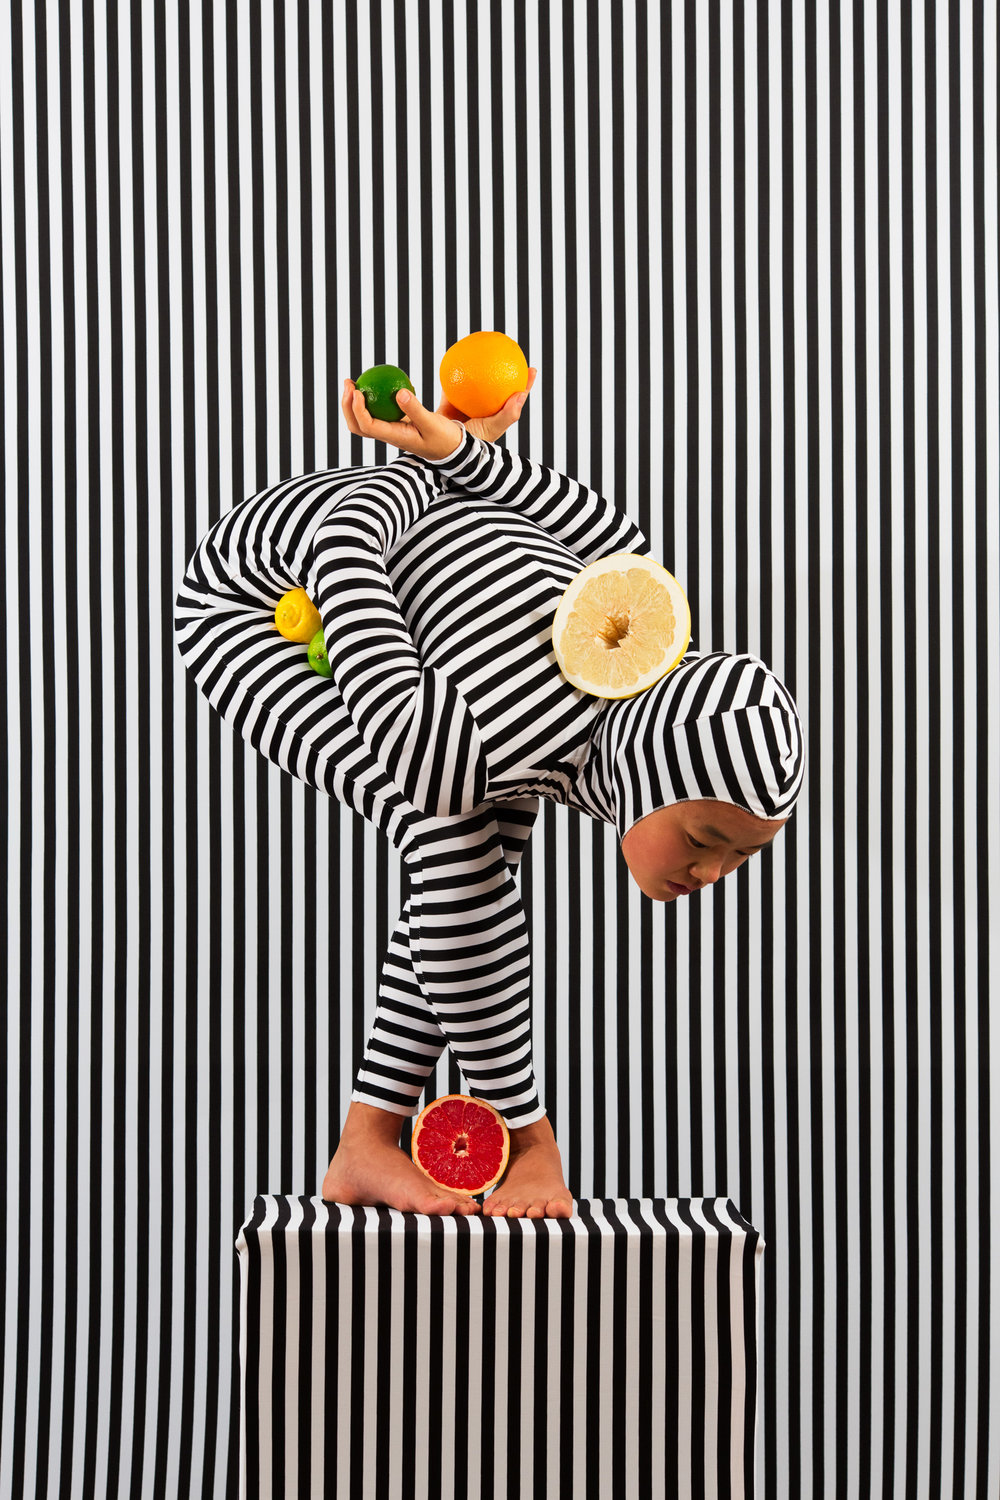 An Arrangement (Stripes Case Study 5)  2018, archival pigment print 91.5 x 61 cm / 36 x 24 in. Edition of 3